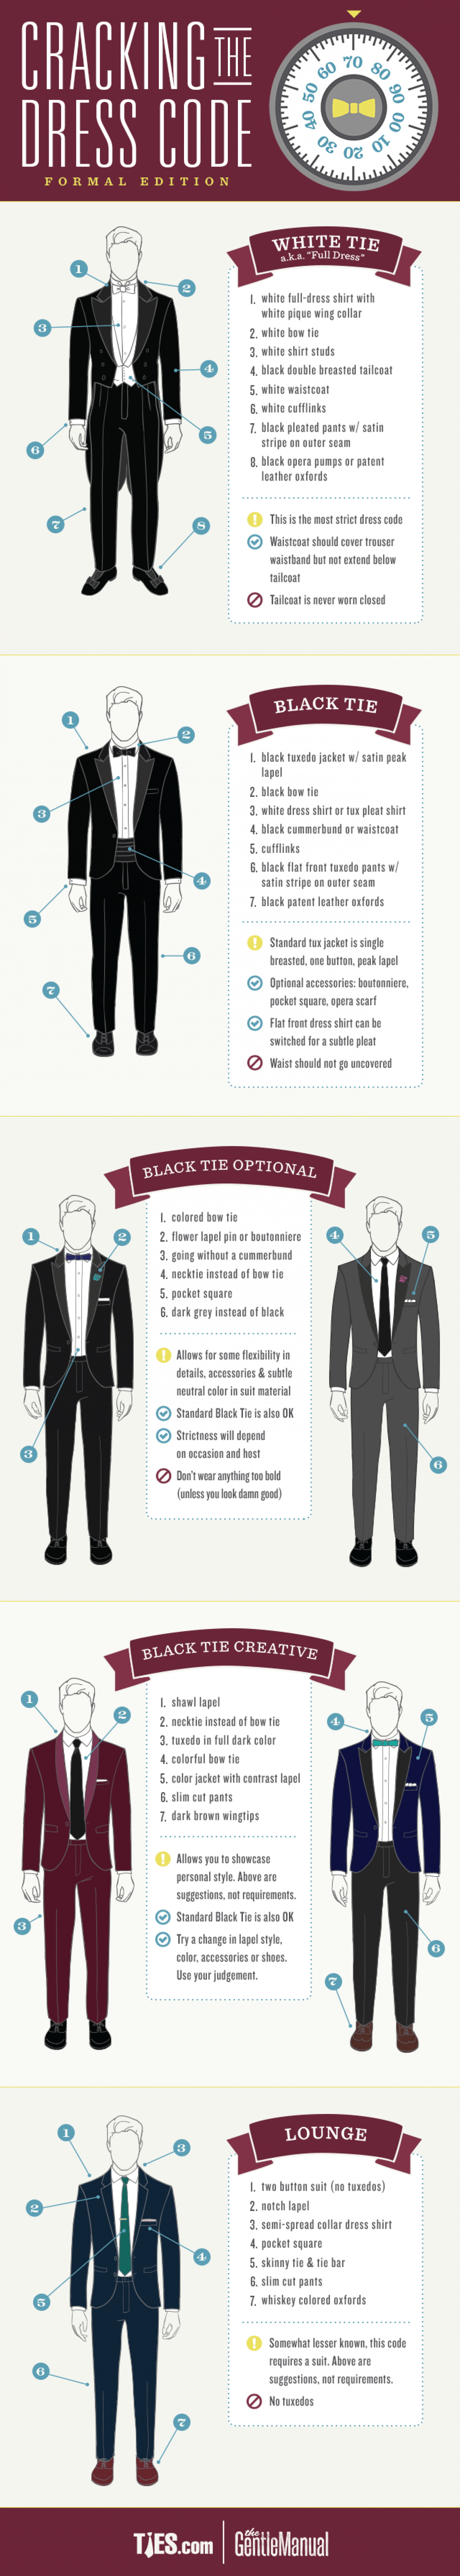 cracking the dress code the formal edition visually